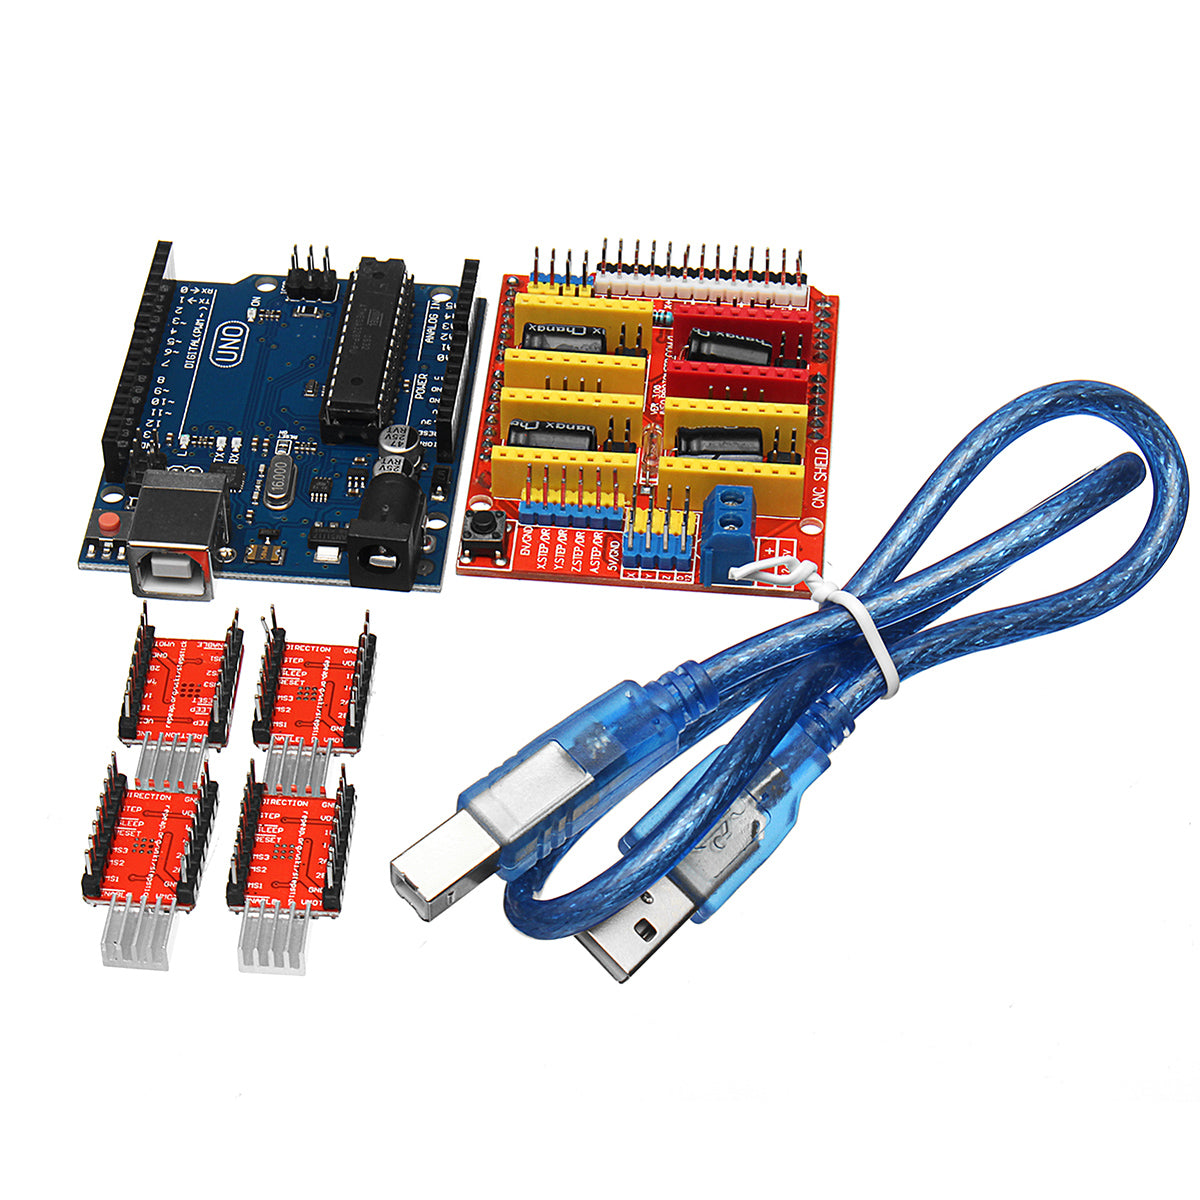 CNC Shield V3 + UNO R3 Board + 4*A4988 Driver + USB Cable 3D Printer Kit For Arduino